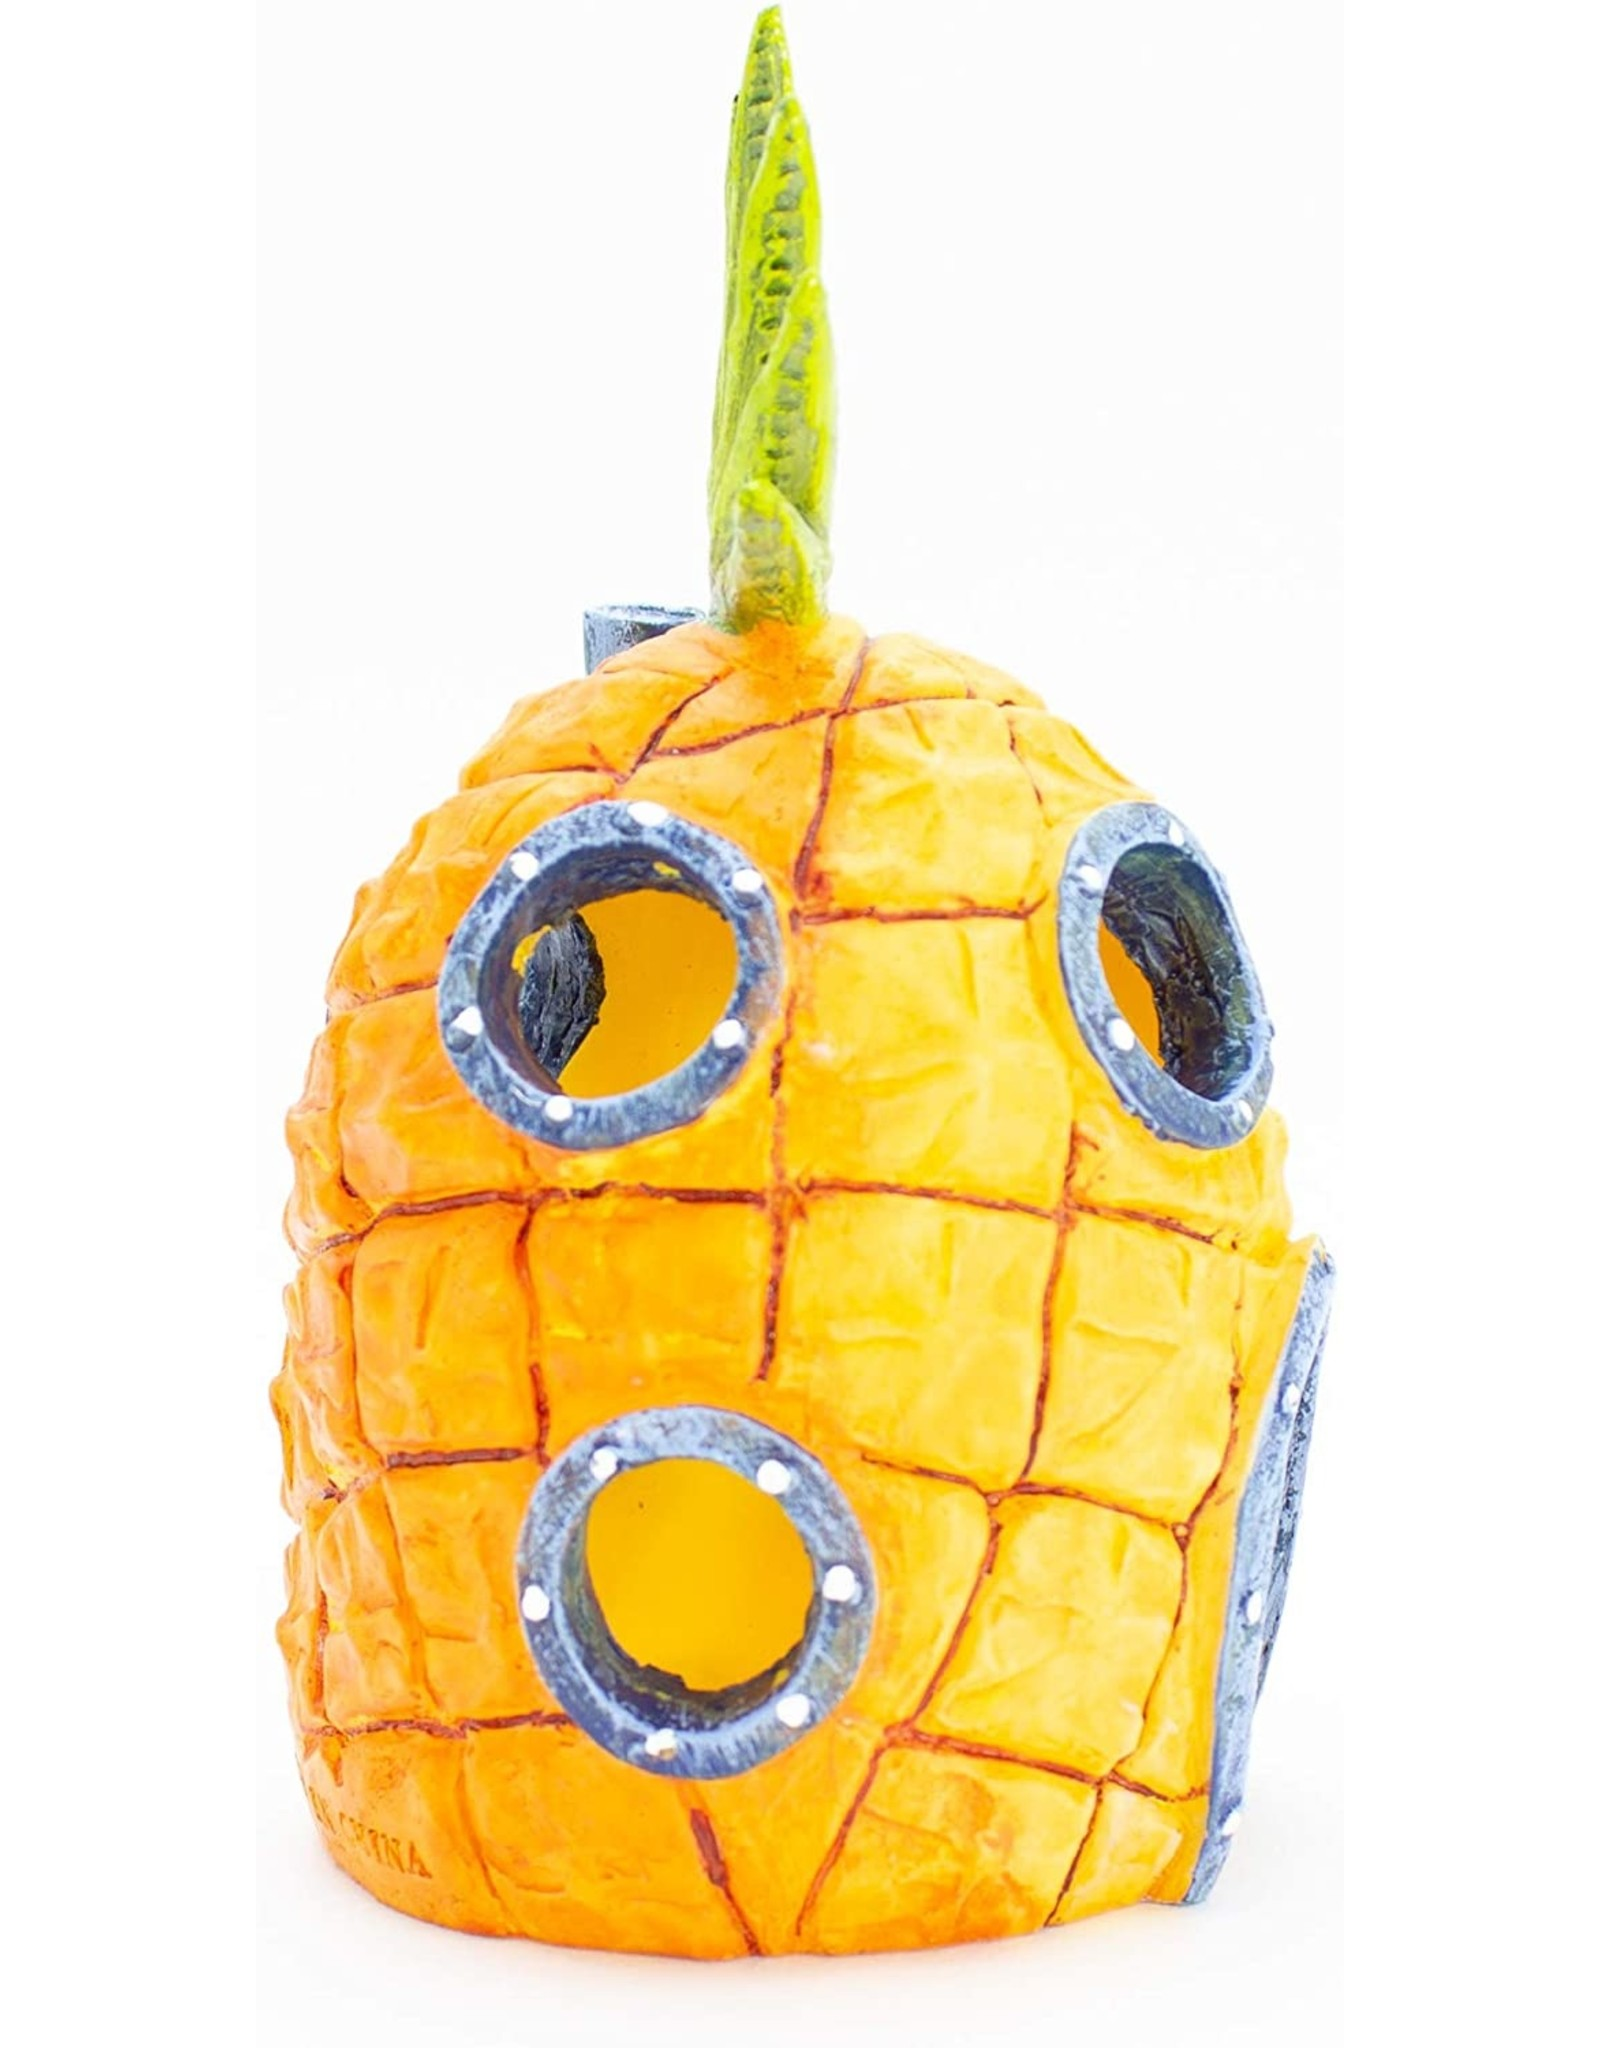 "Penn Plax PENN PLAX Spongebob Ornament Pineapple 6.5"" Licensed"